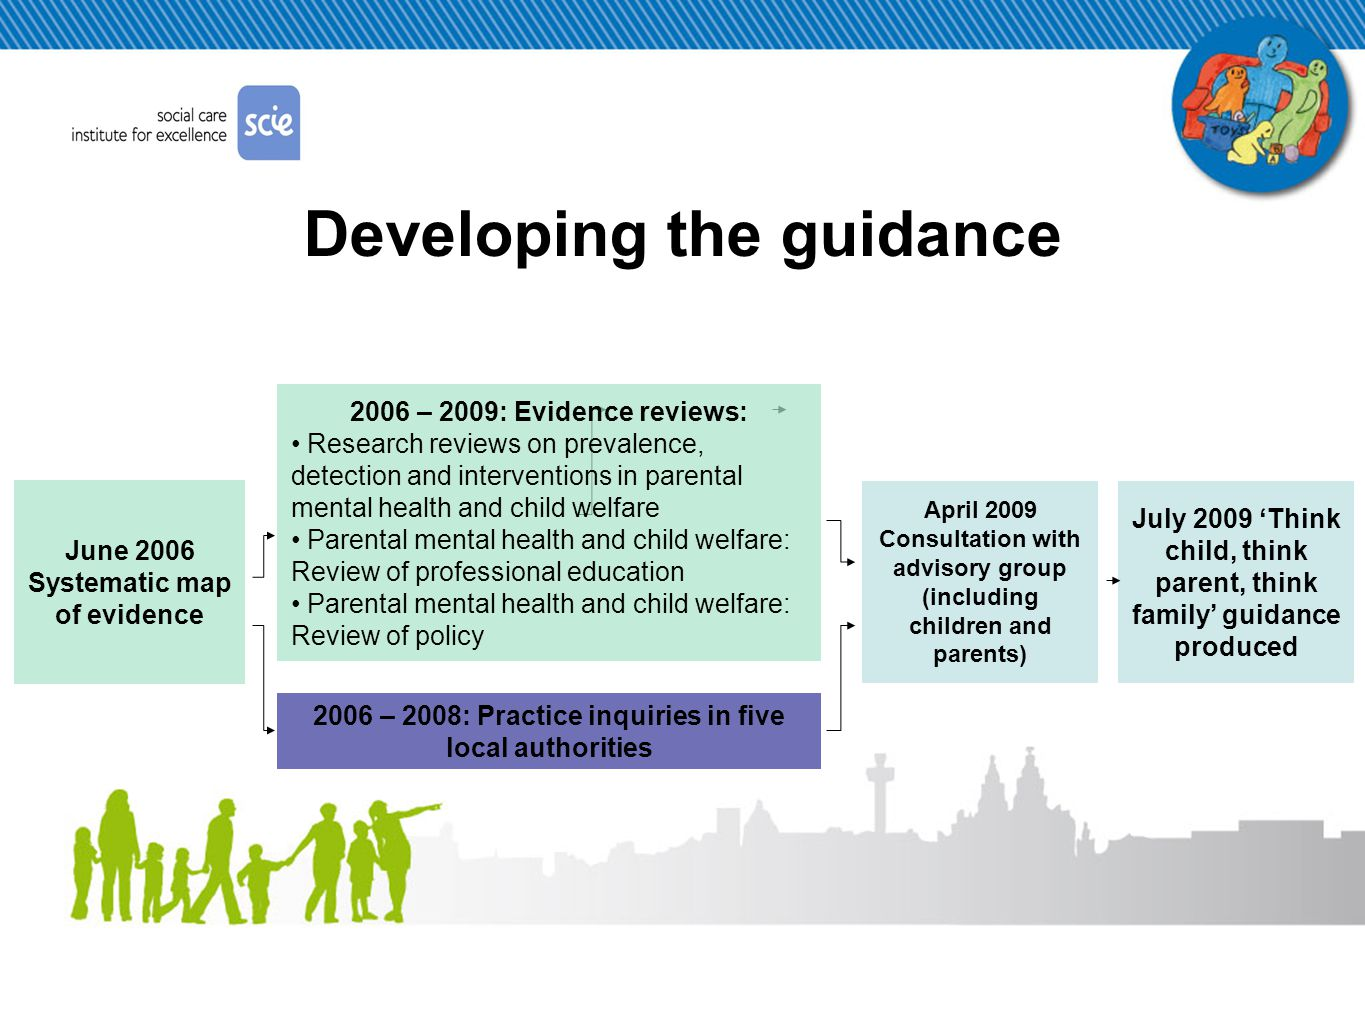 Developing the guidance June 2006 Systematic map of evidence 2006 – 2008: Practice inquiries in five local authorities April 2009 Consultation with advisory group (including children and parents) July 2009 'Think child, think parent, think family' guidance produced 2006 – 2009: Evidence reviews: Research reviews on prevalence, detection and interventions in parental mental health and child welfare Parental mental health and child welfare: Review of professional education Parental mental health and child welfare: Review of policy